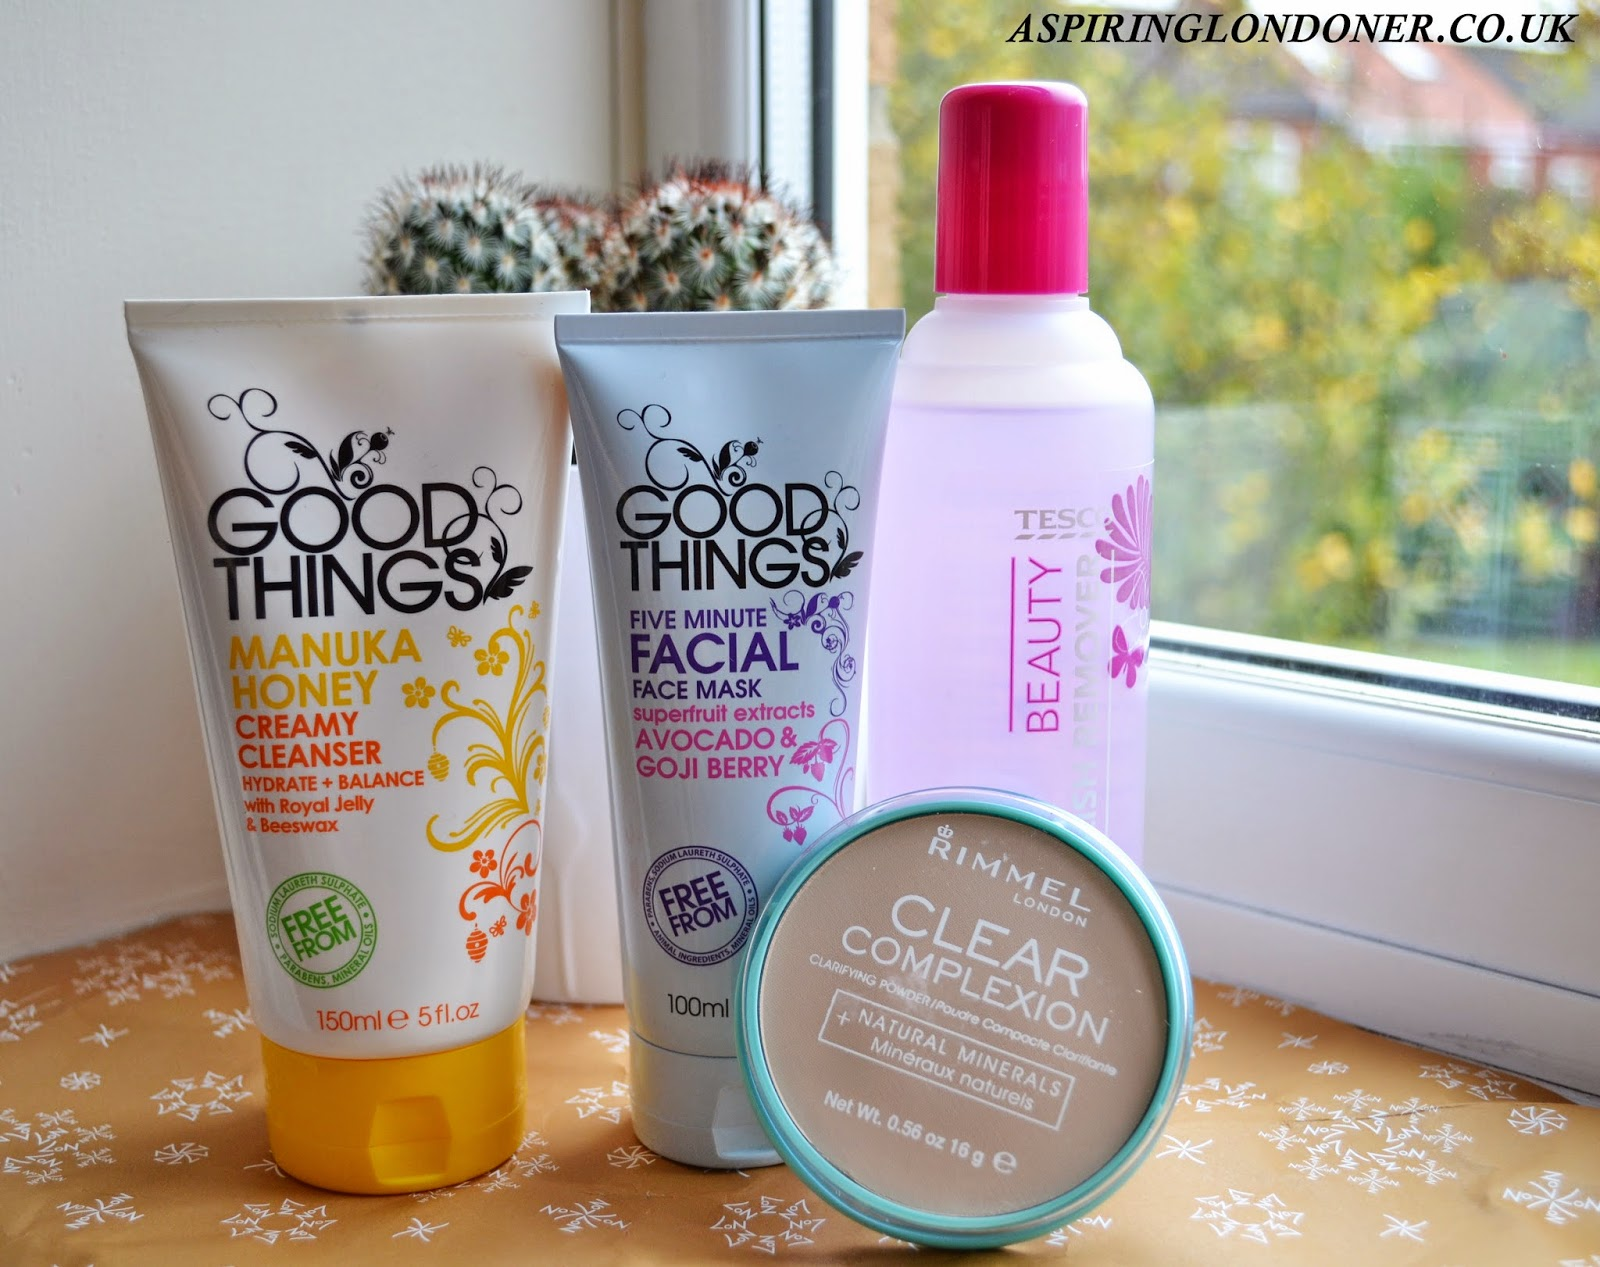 #TescoBeautyHaul ft. Good Things Skincare, Rimmel Clear Complexion Stay Matte Powder - Aspiring Londoner